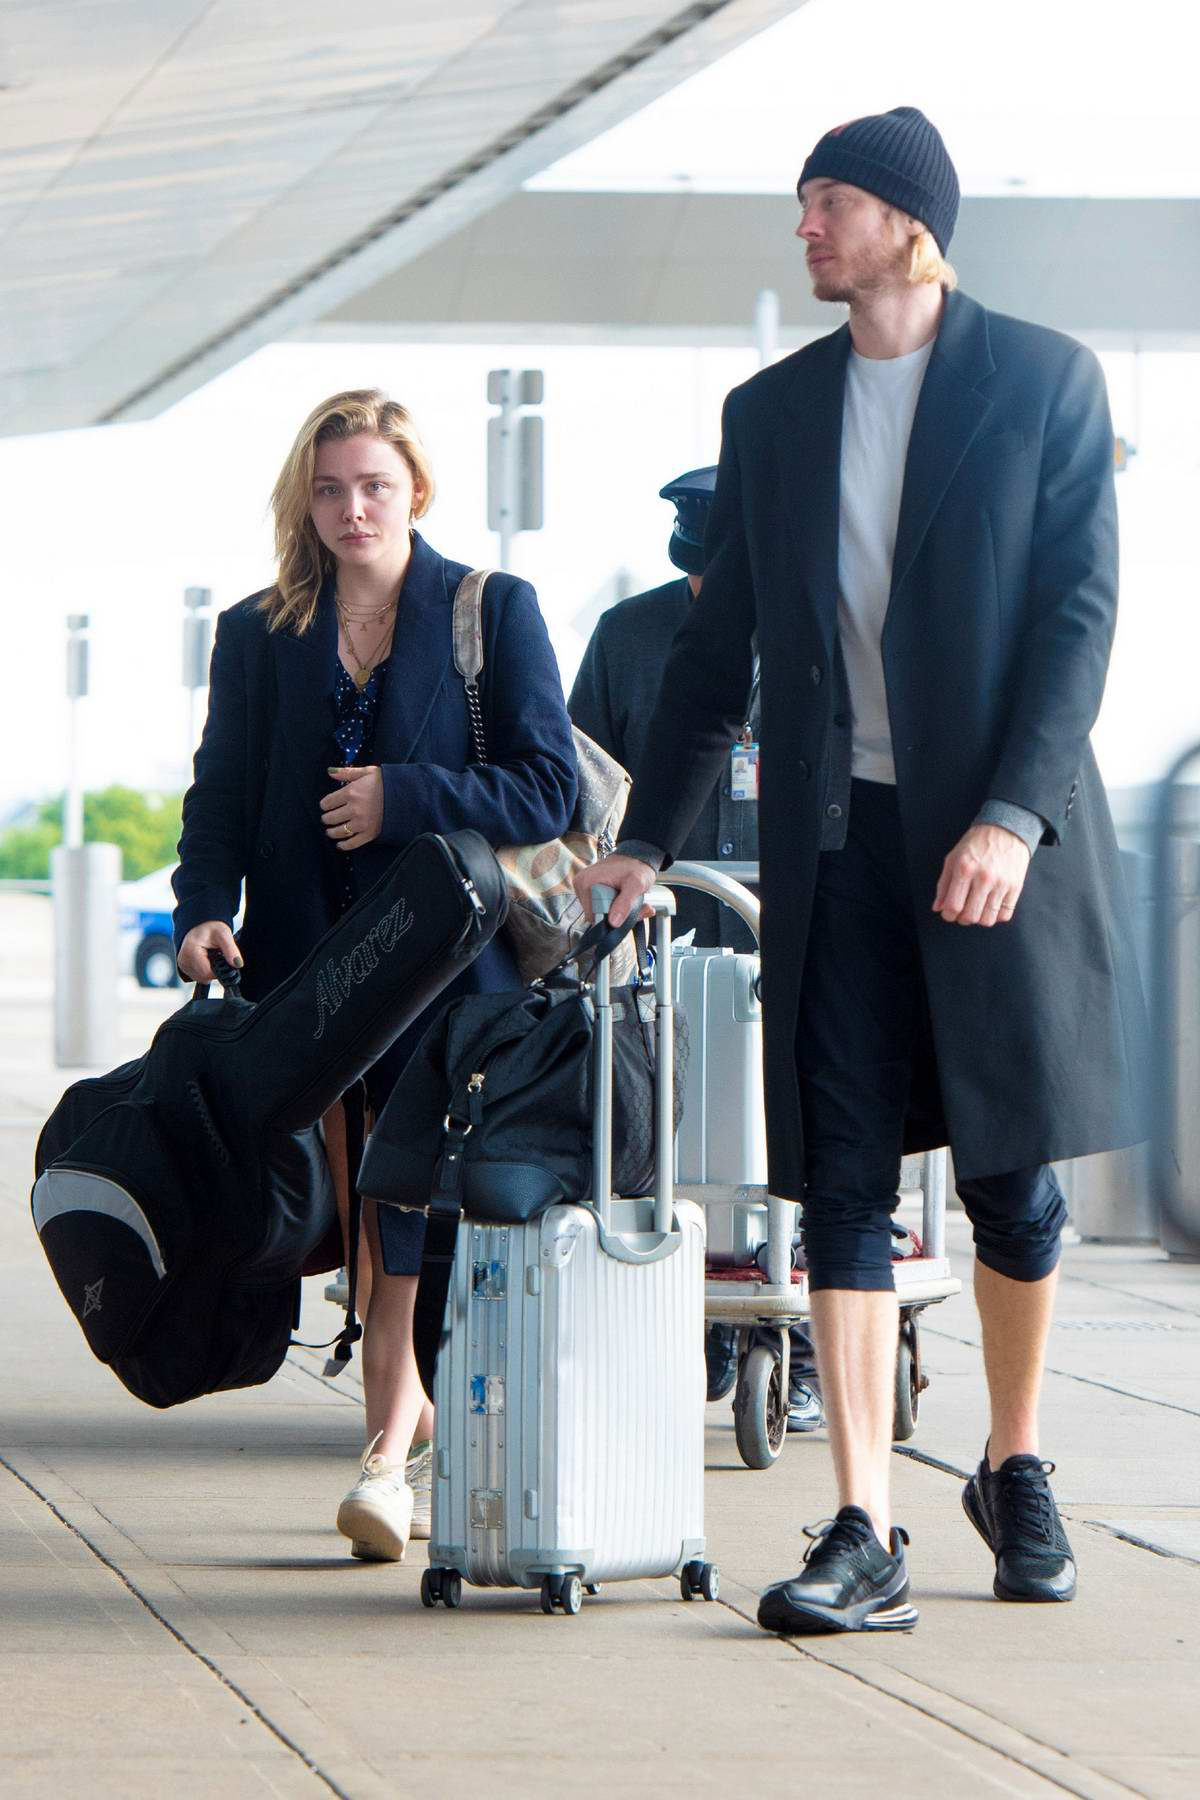 Chloe Grace Moretz spotted with her brother Trevor Duke-Moretz at JFK Airport in New York City